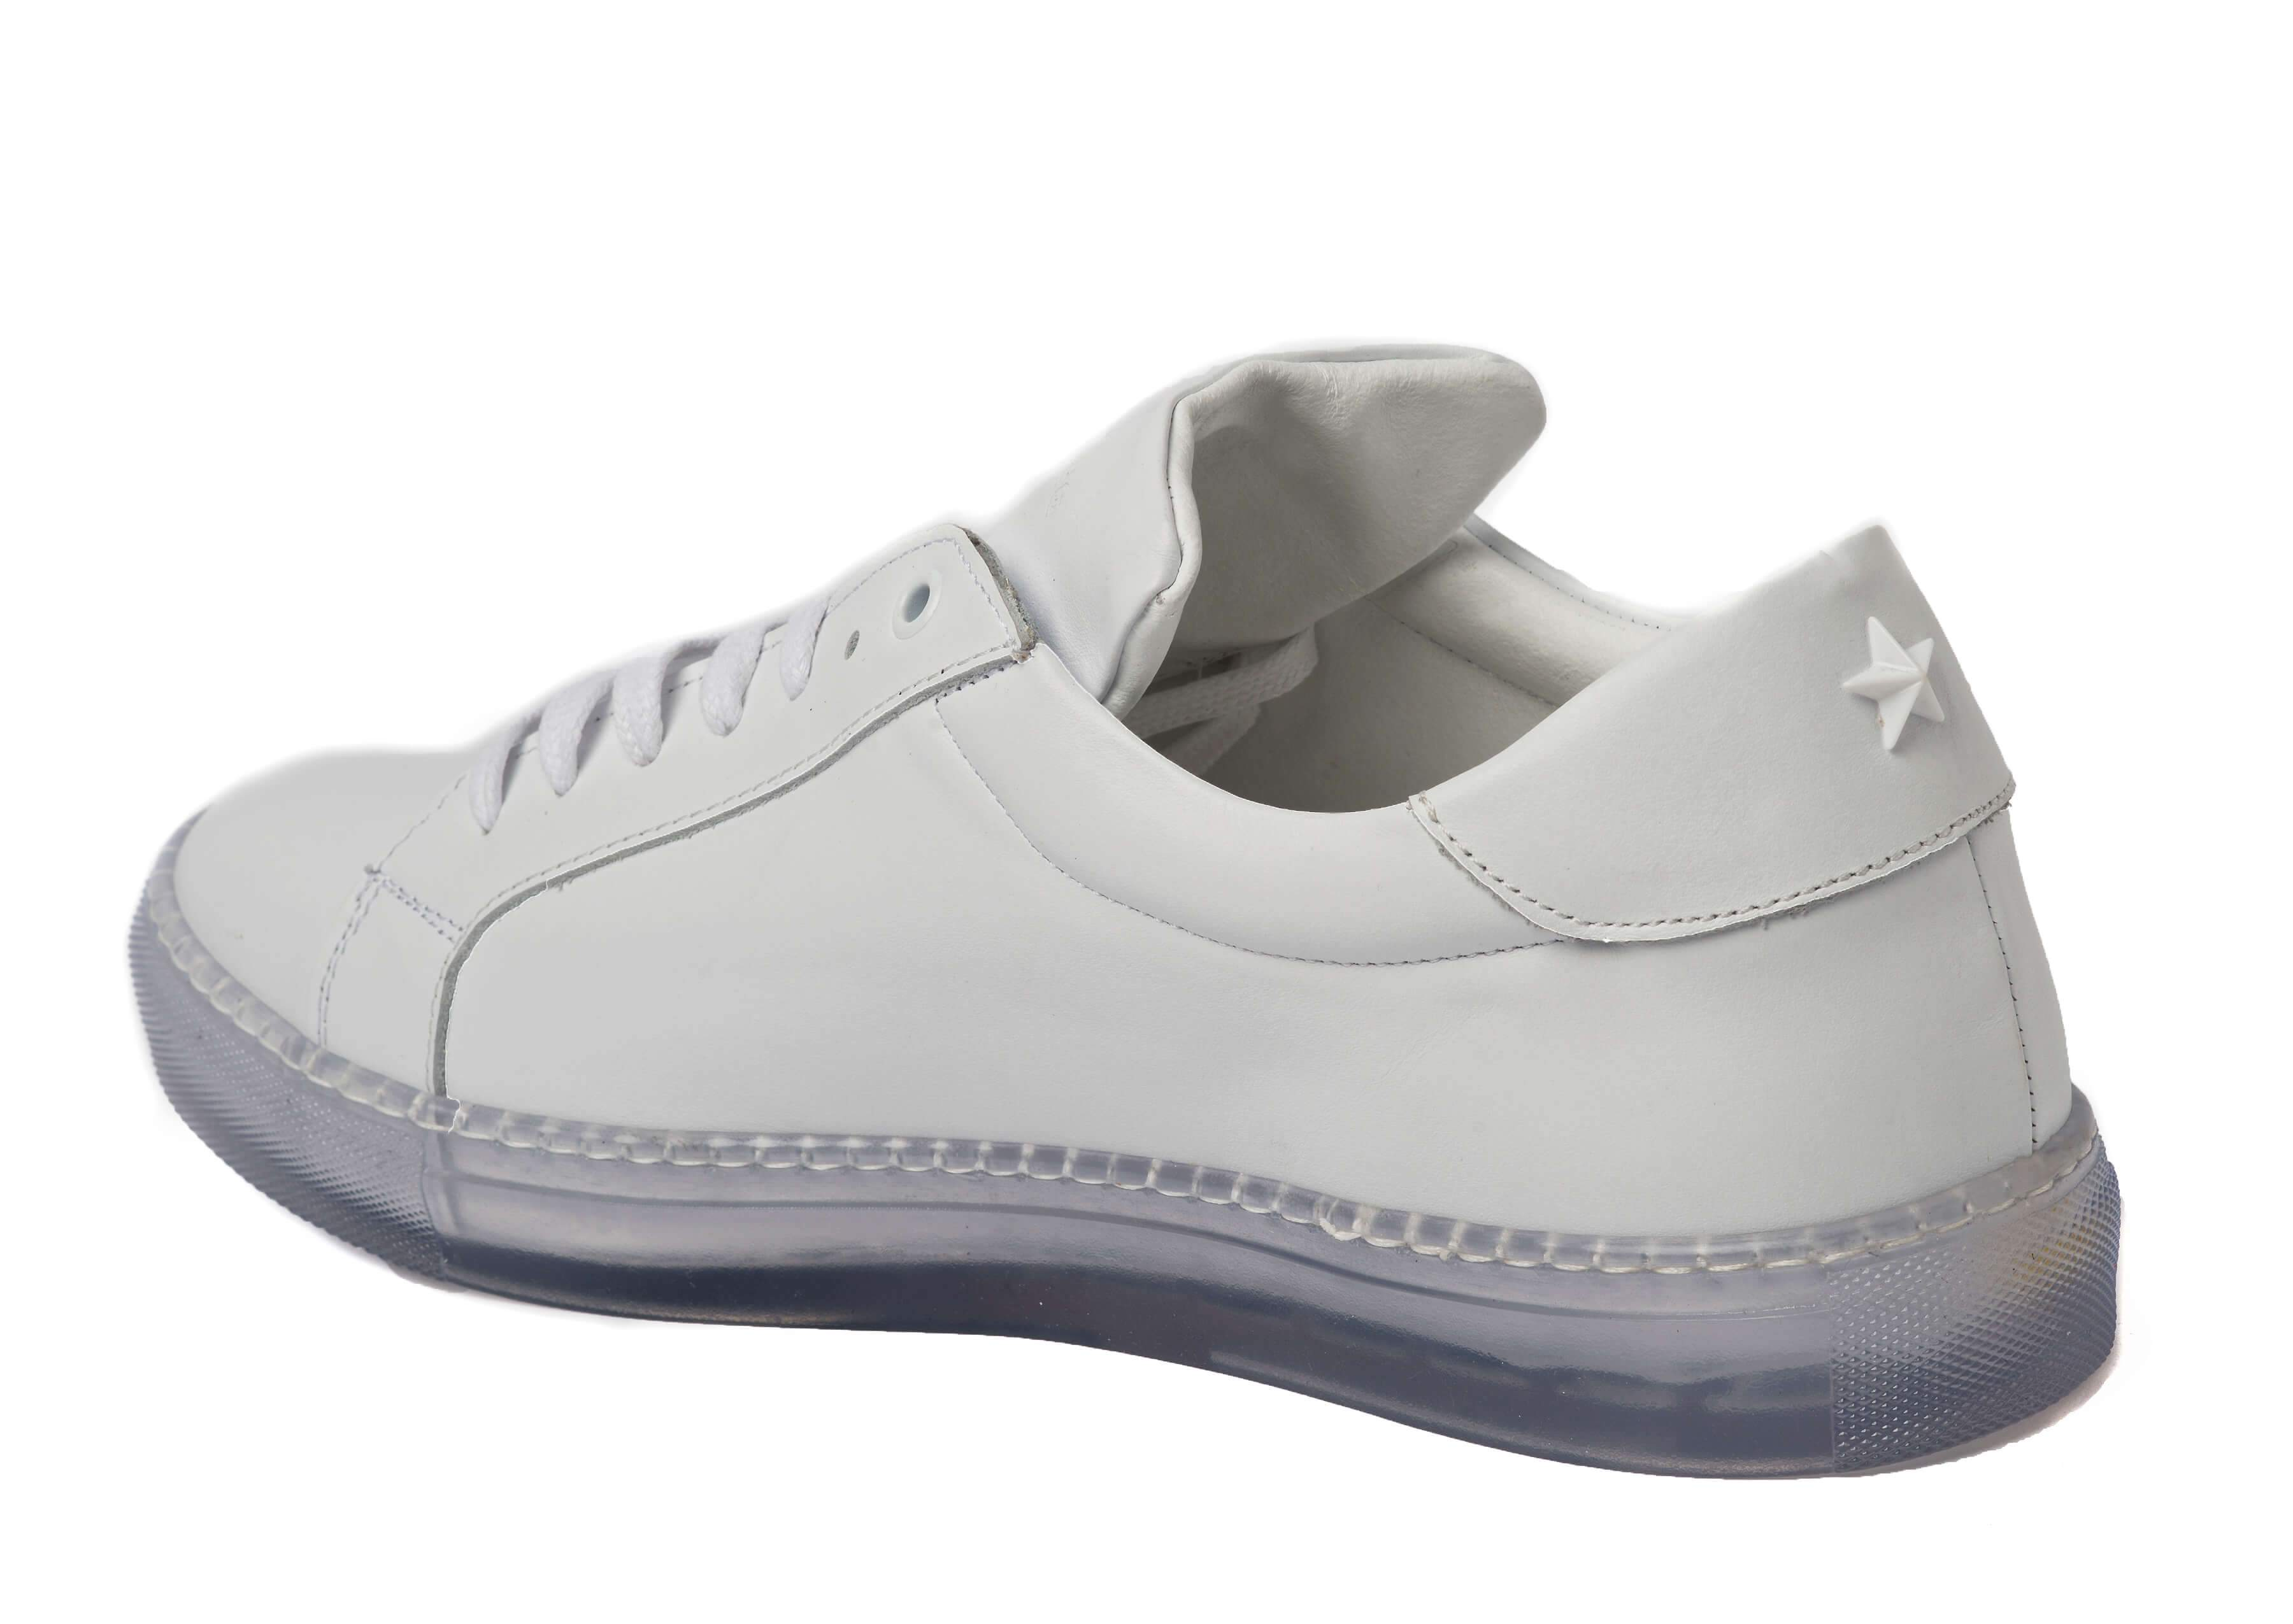 White Clear Sole Sneakers for Men - Left 1818-CRW - Jared Lang